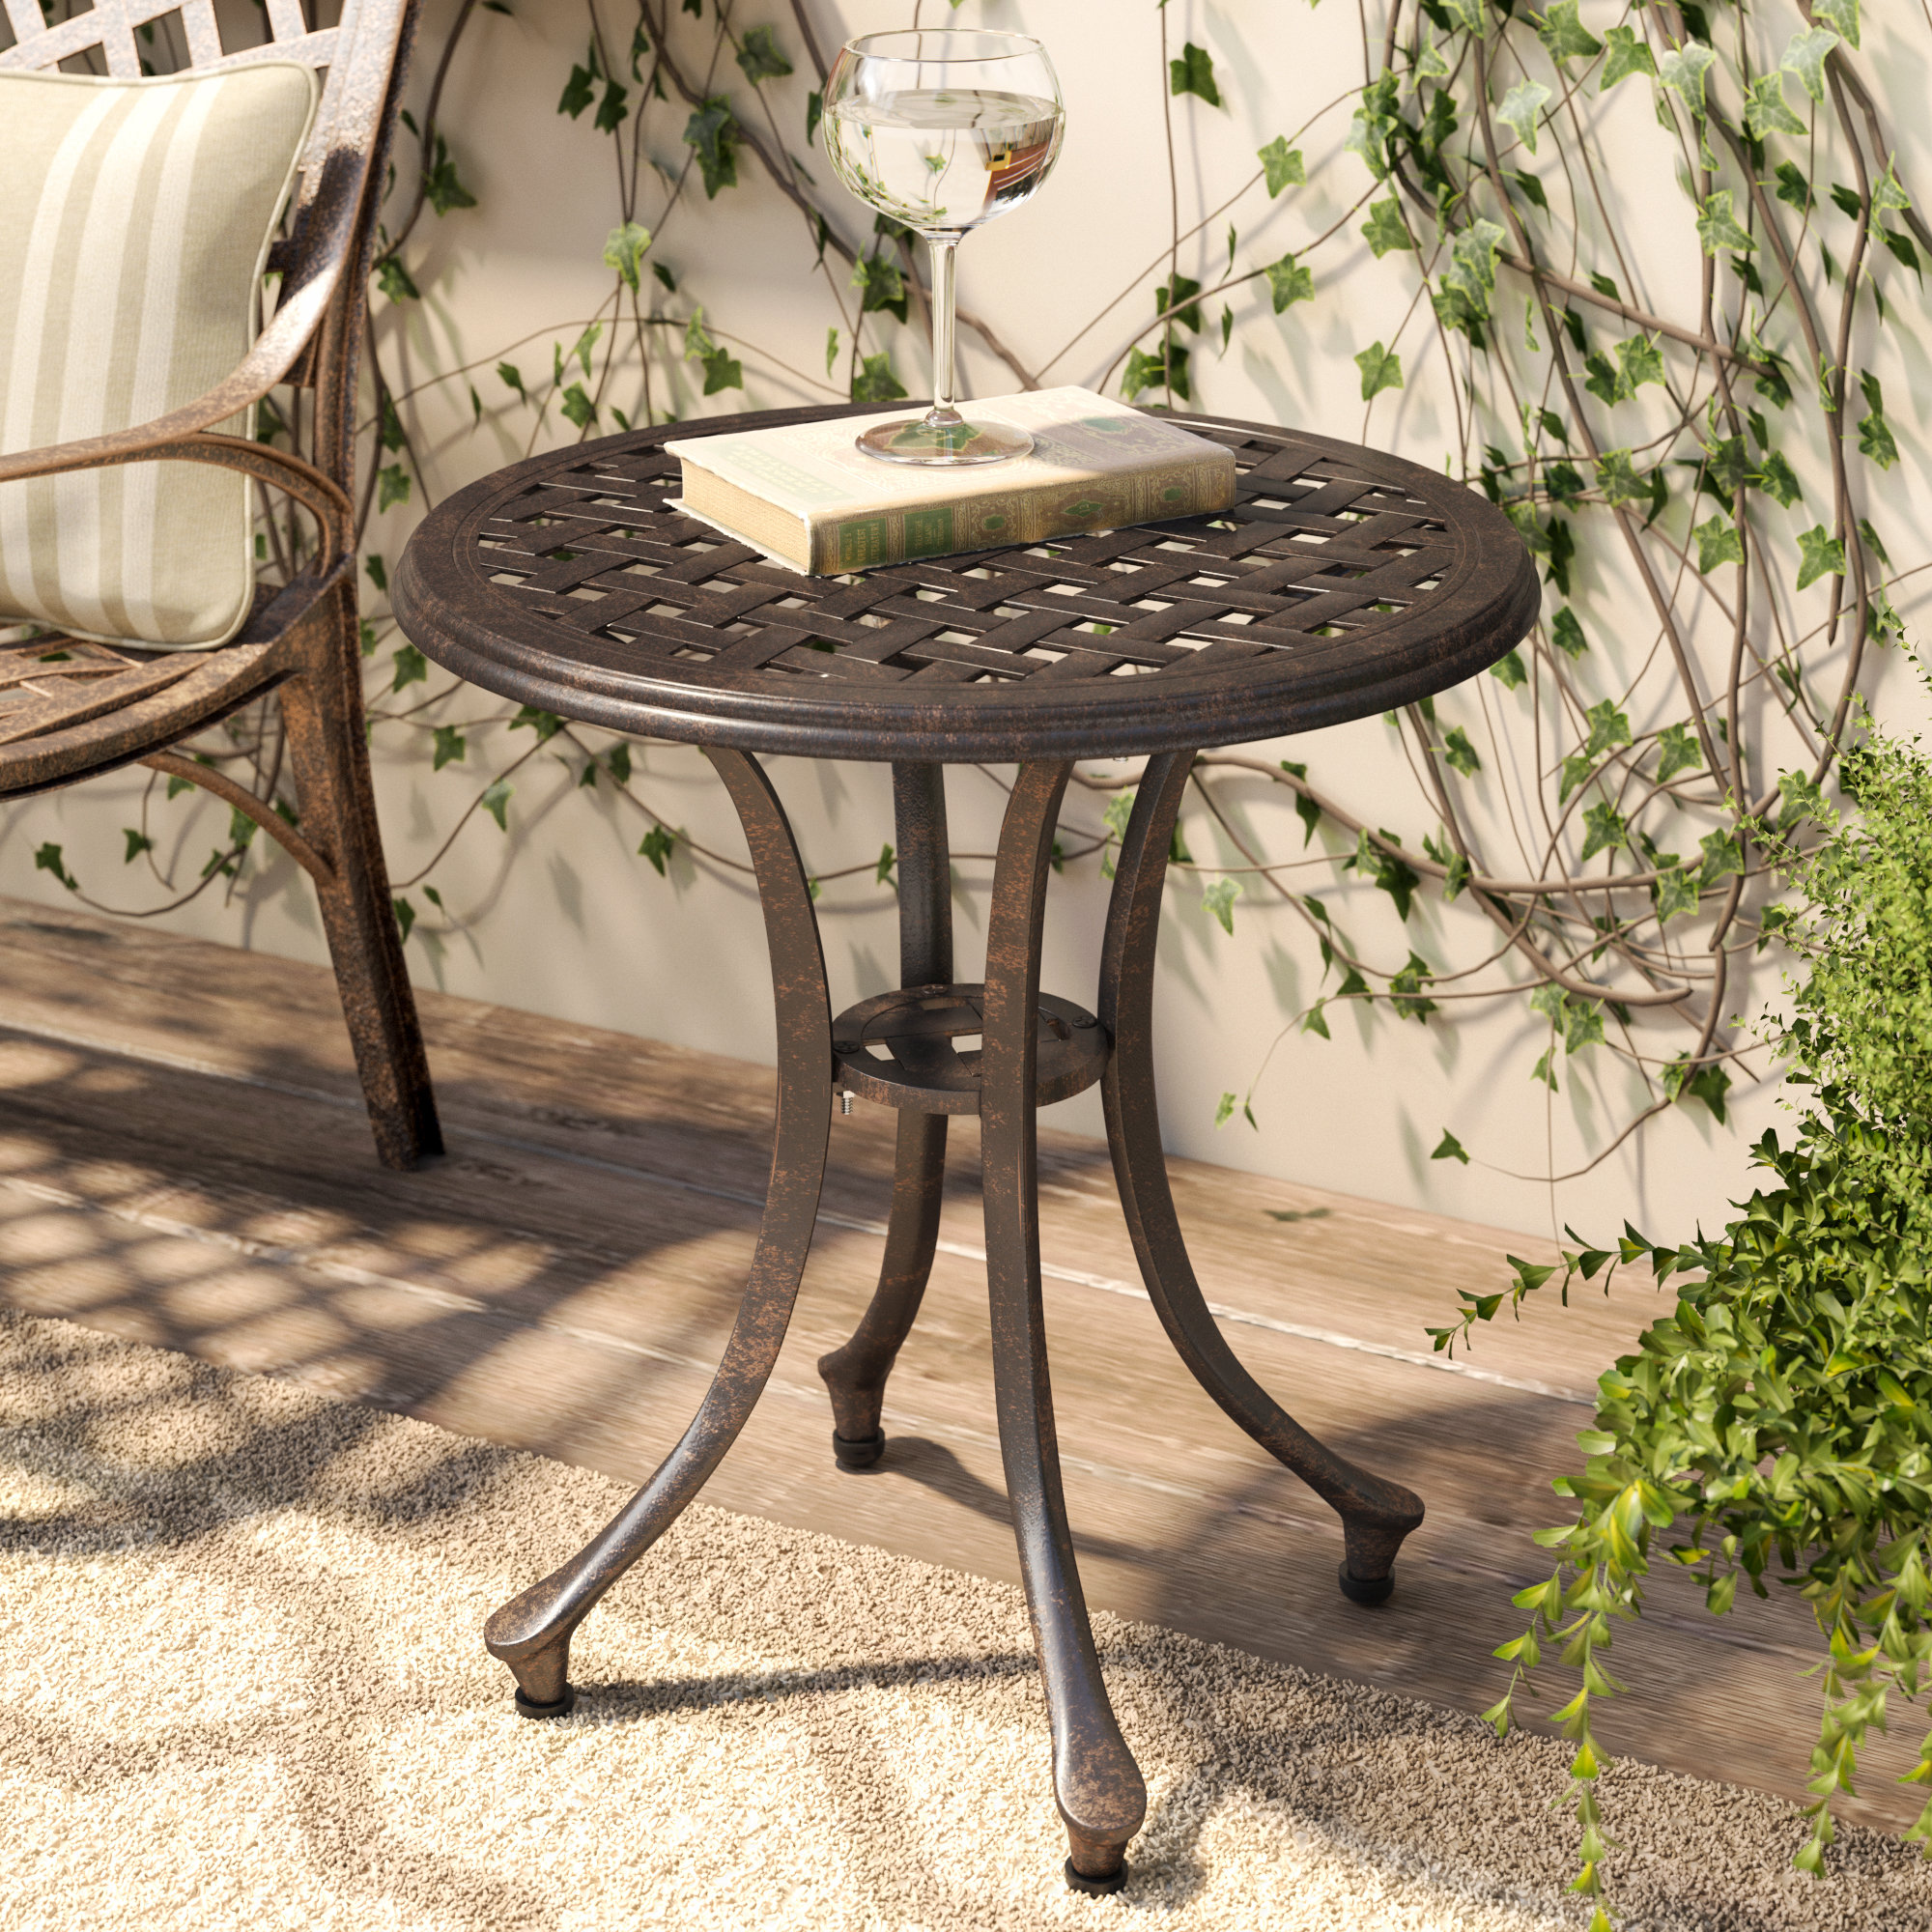 charlton home kastner outdoor metal side table reviews wrought iron patio accent bathroom caddy corner furniture antique with shelf small white bedside outside tables bistro bar